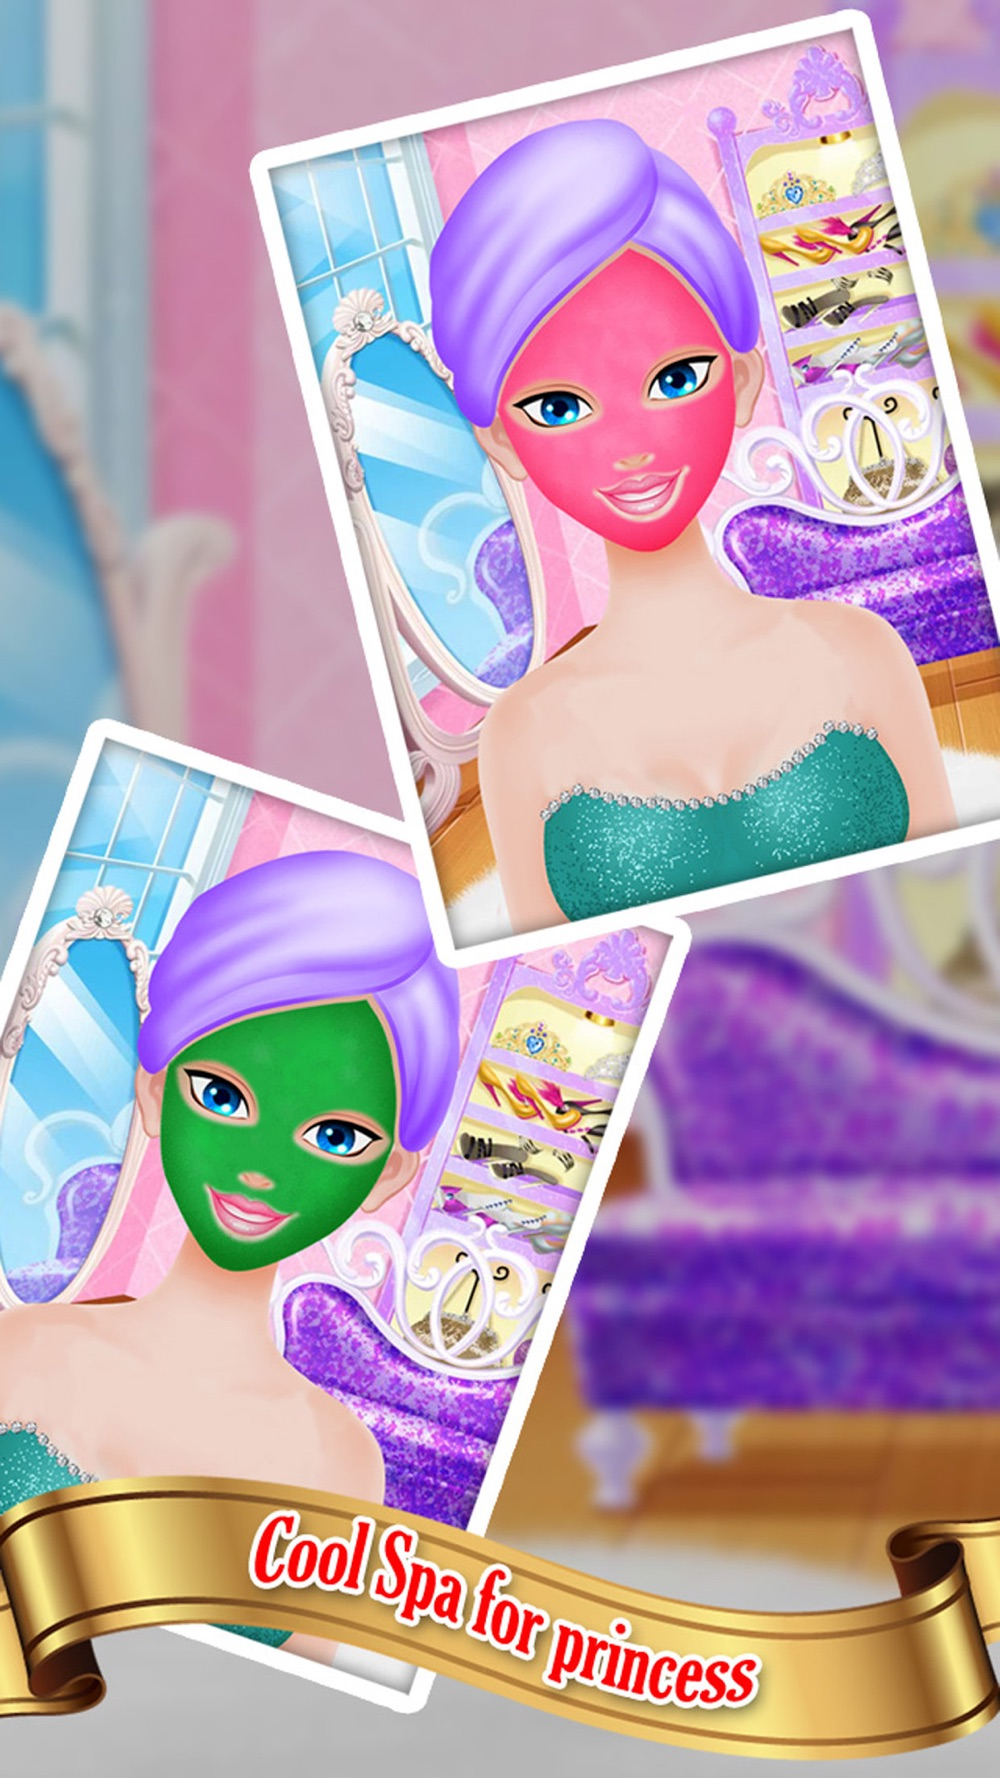 Hack tool for Princess wedding makeover salon : amazing spa, makeup and dress up free games for girls